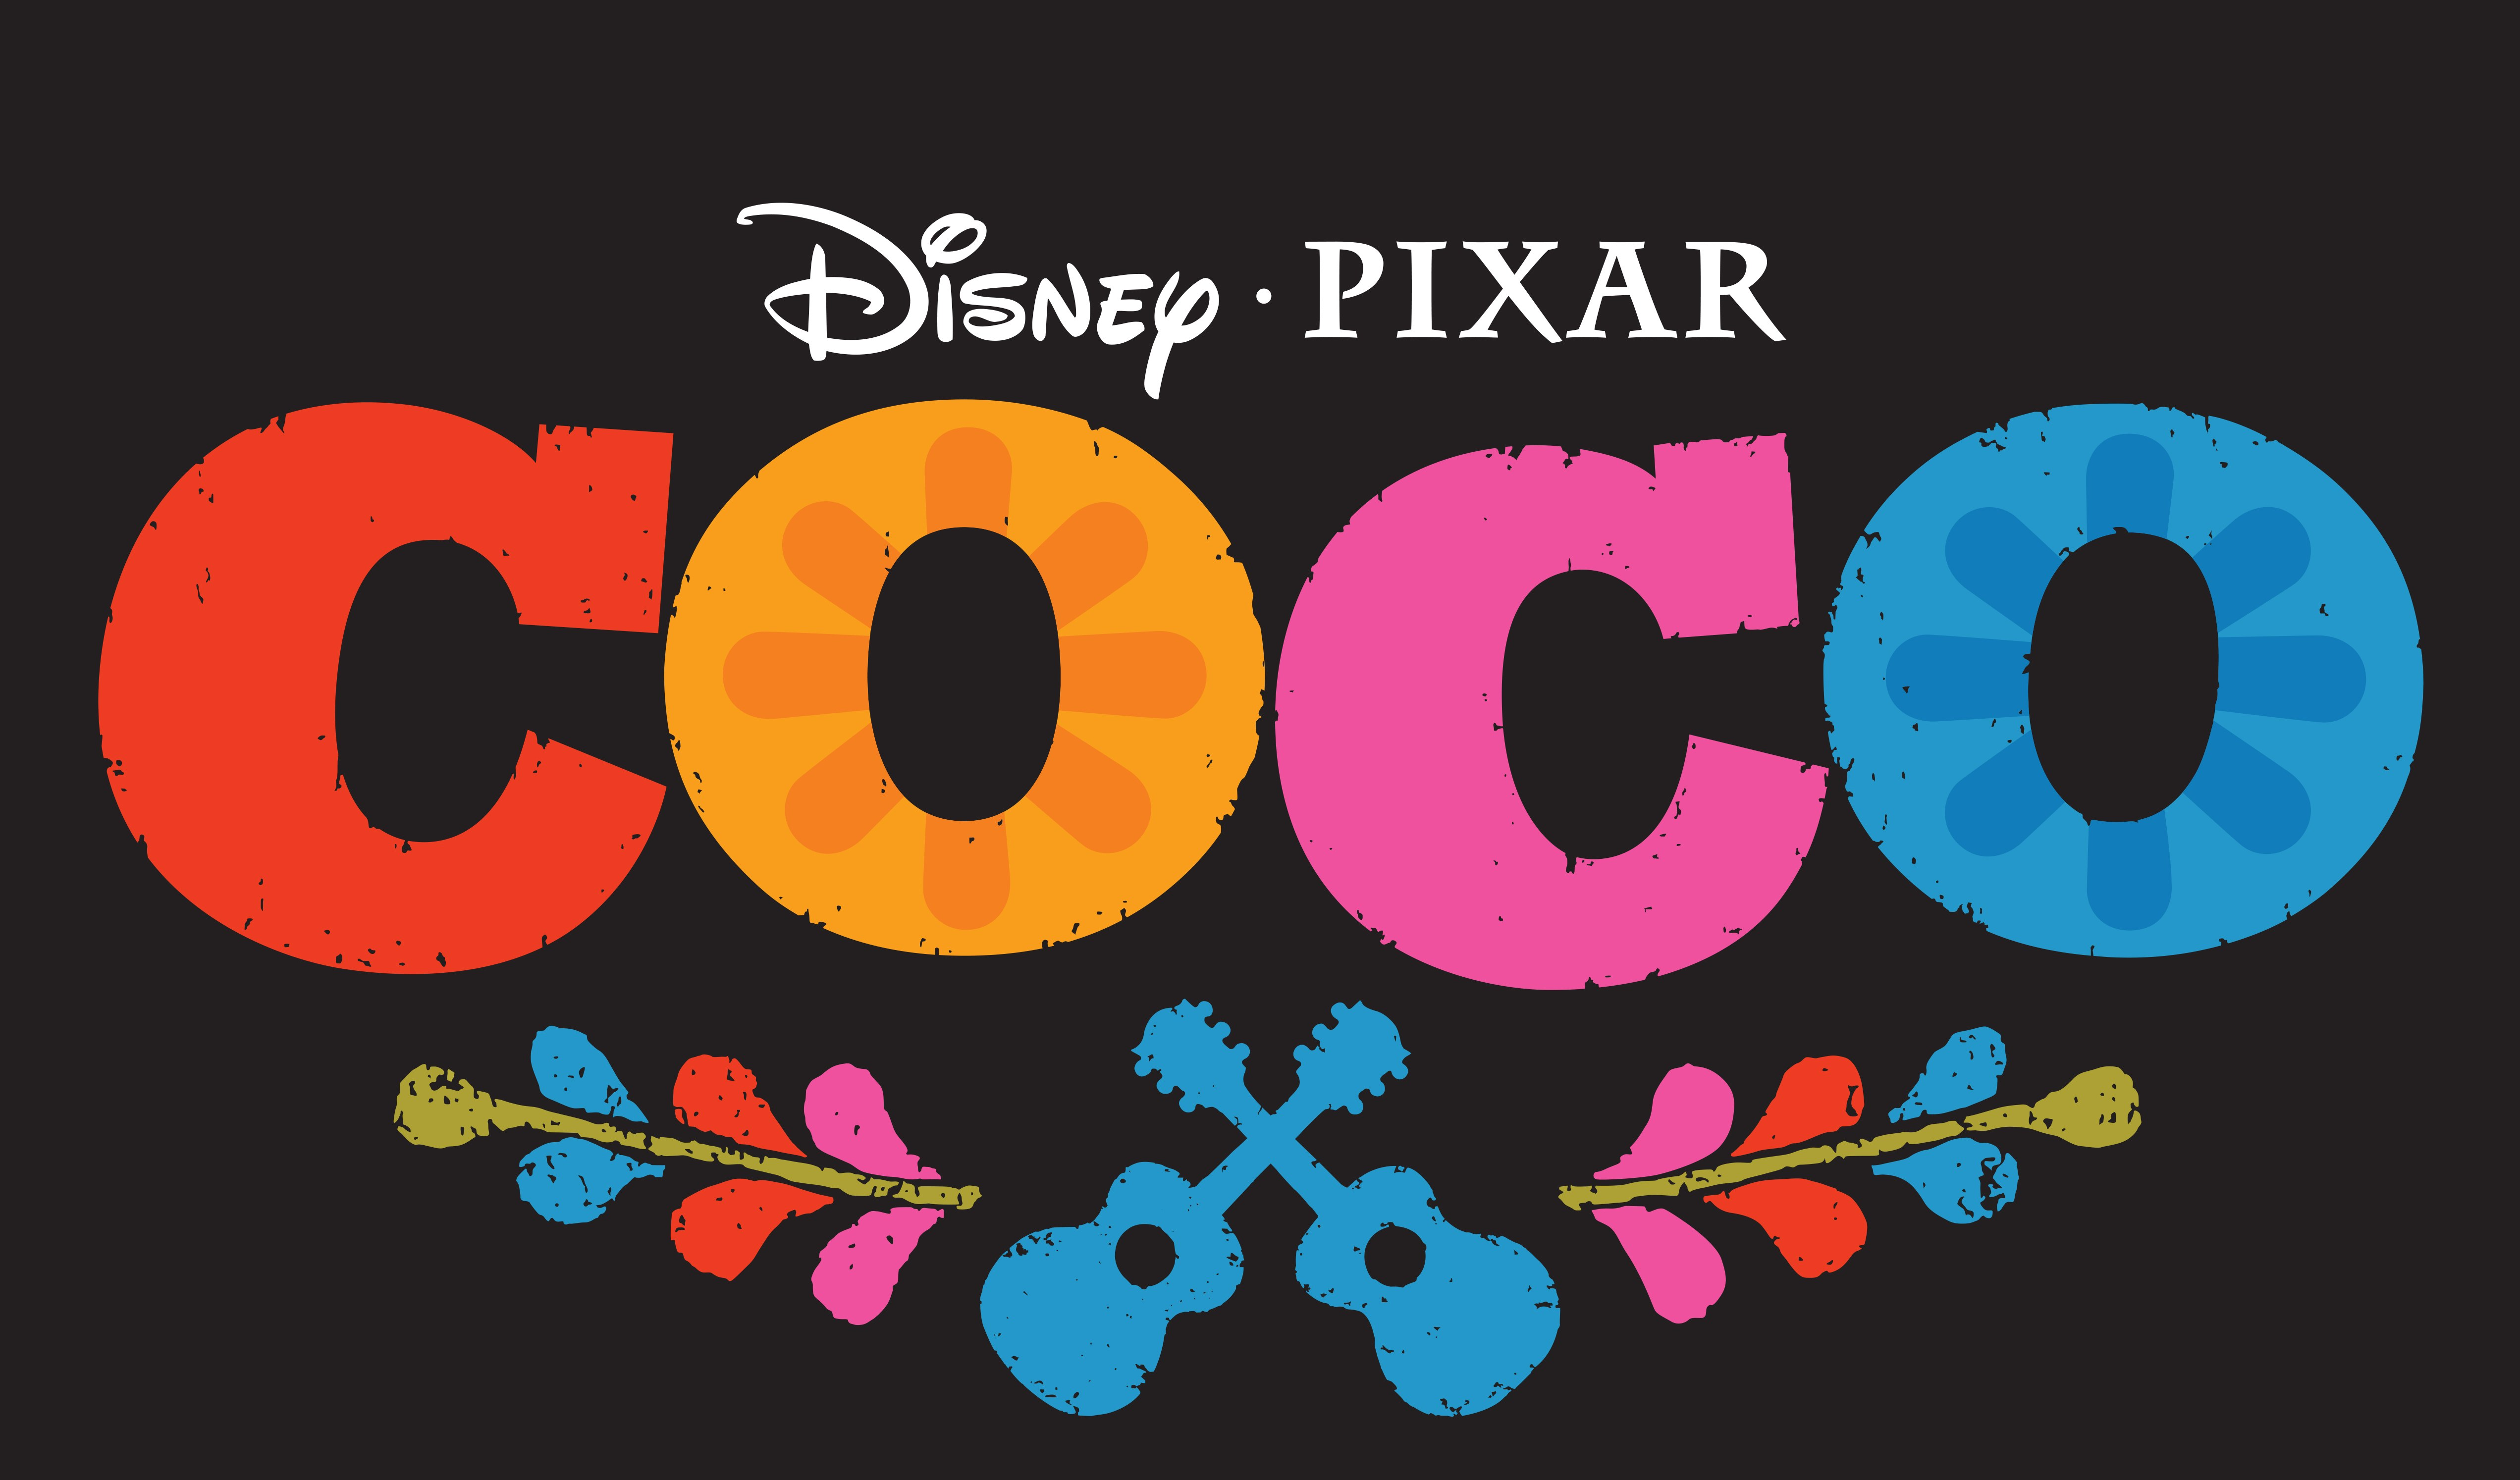 Coco Movie Wallpapers